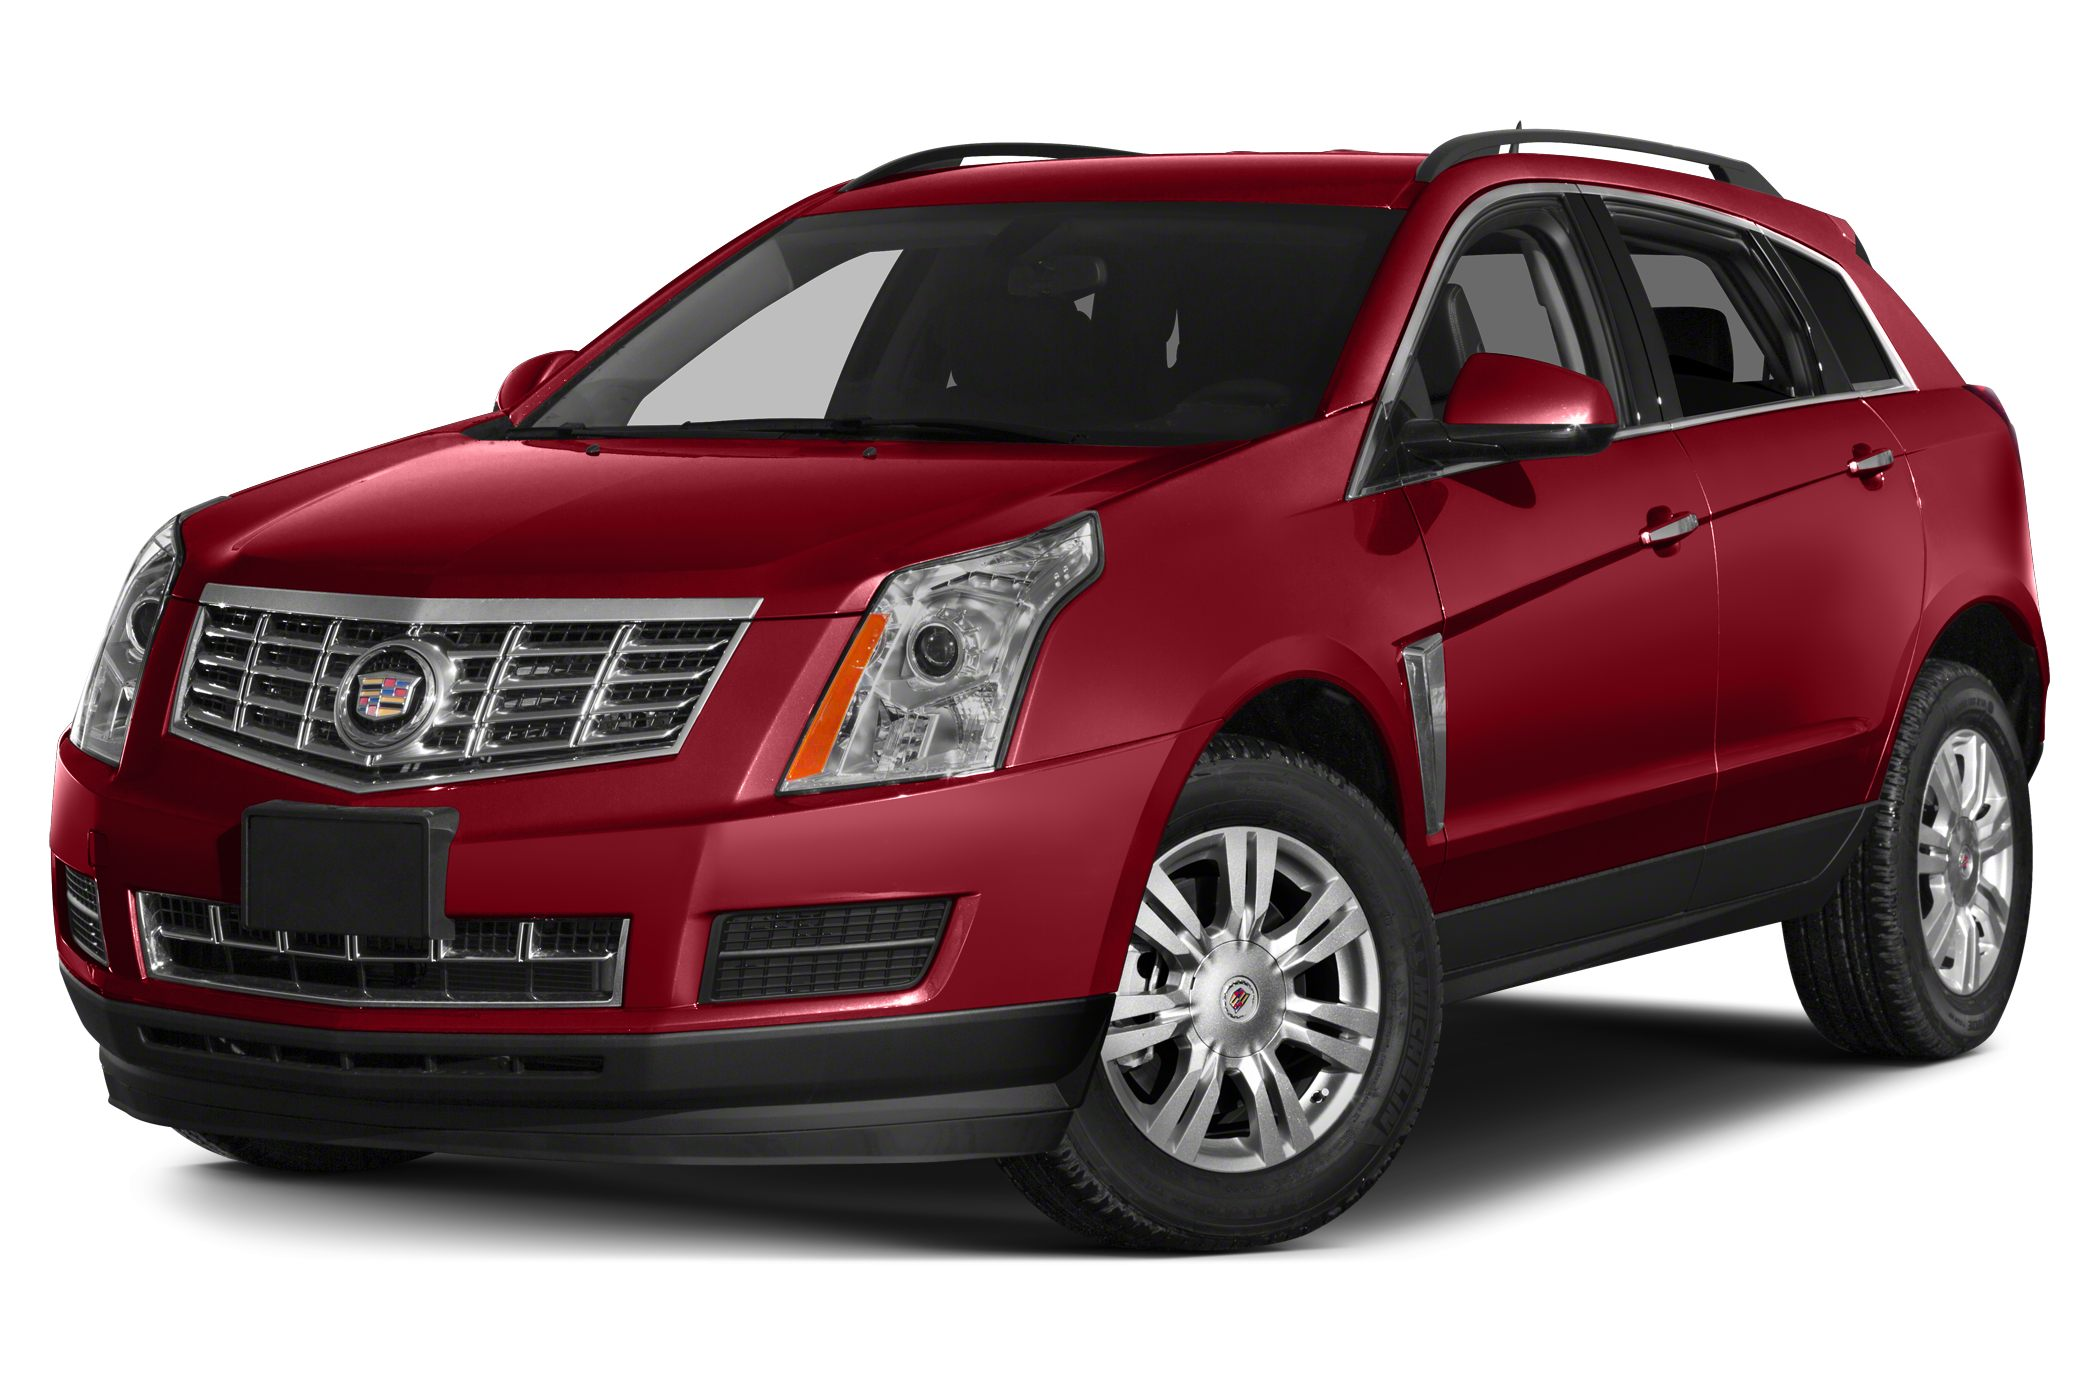 2015 Cadillac SRX Premium Collection SUV for sale in Neosho for $51,260 with 0 miles